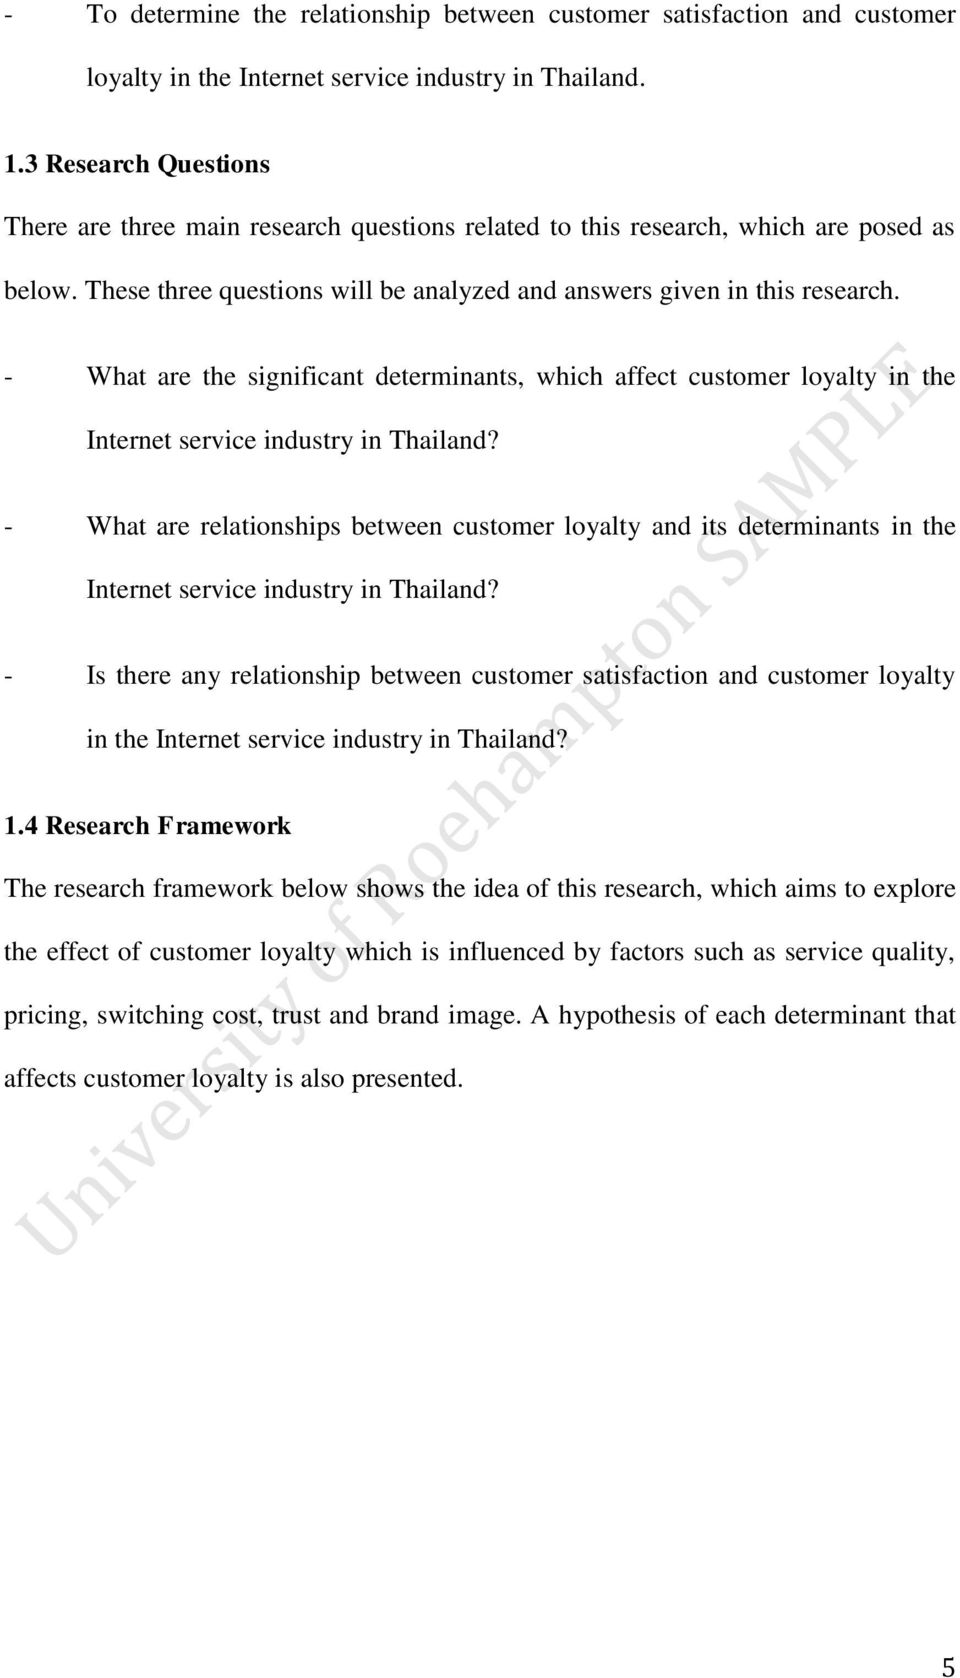 - What are the significant determinants, which affect customer loyalty in the Internet service industry in Thailand?